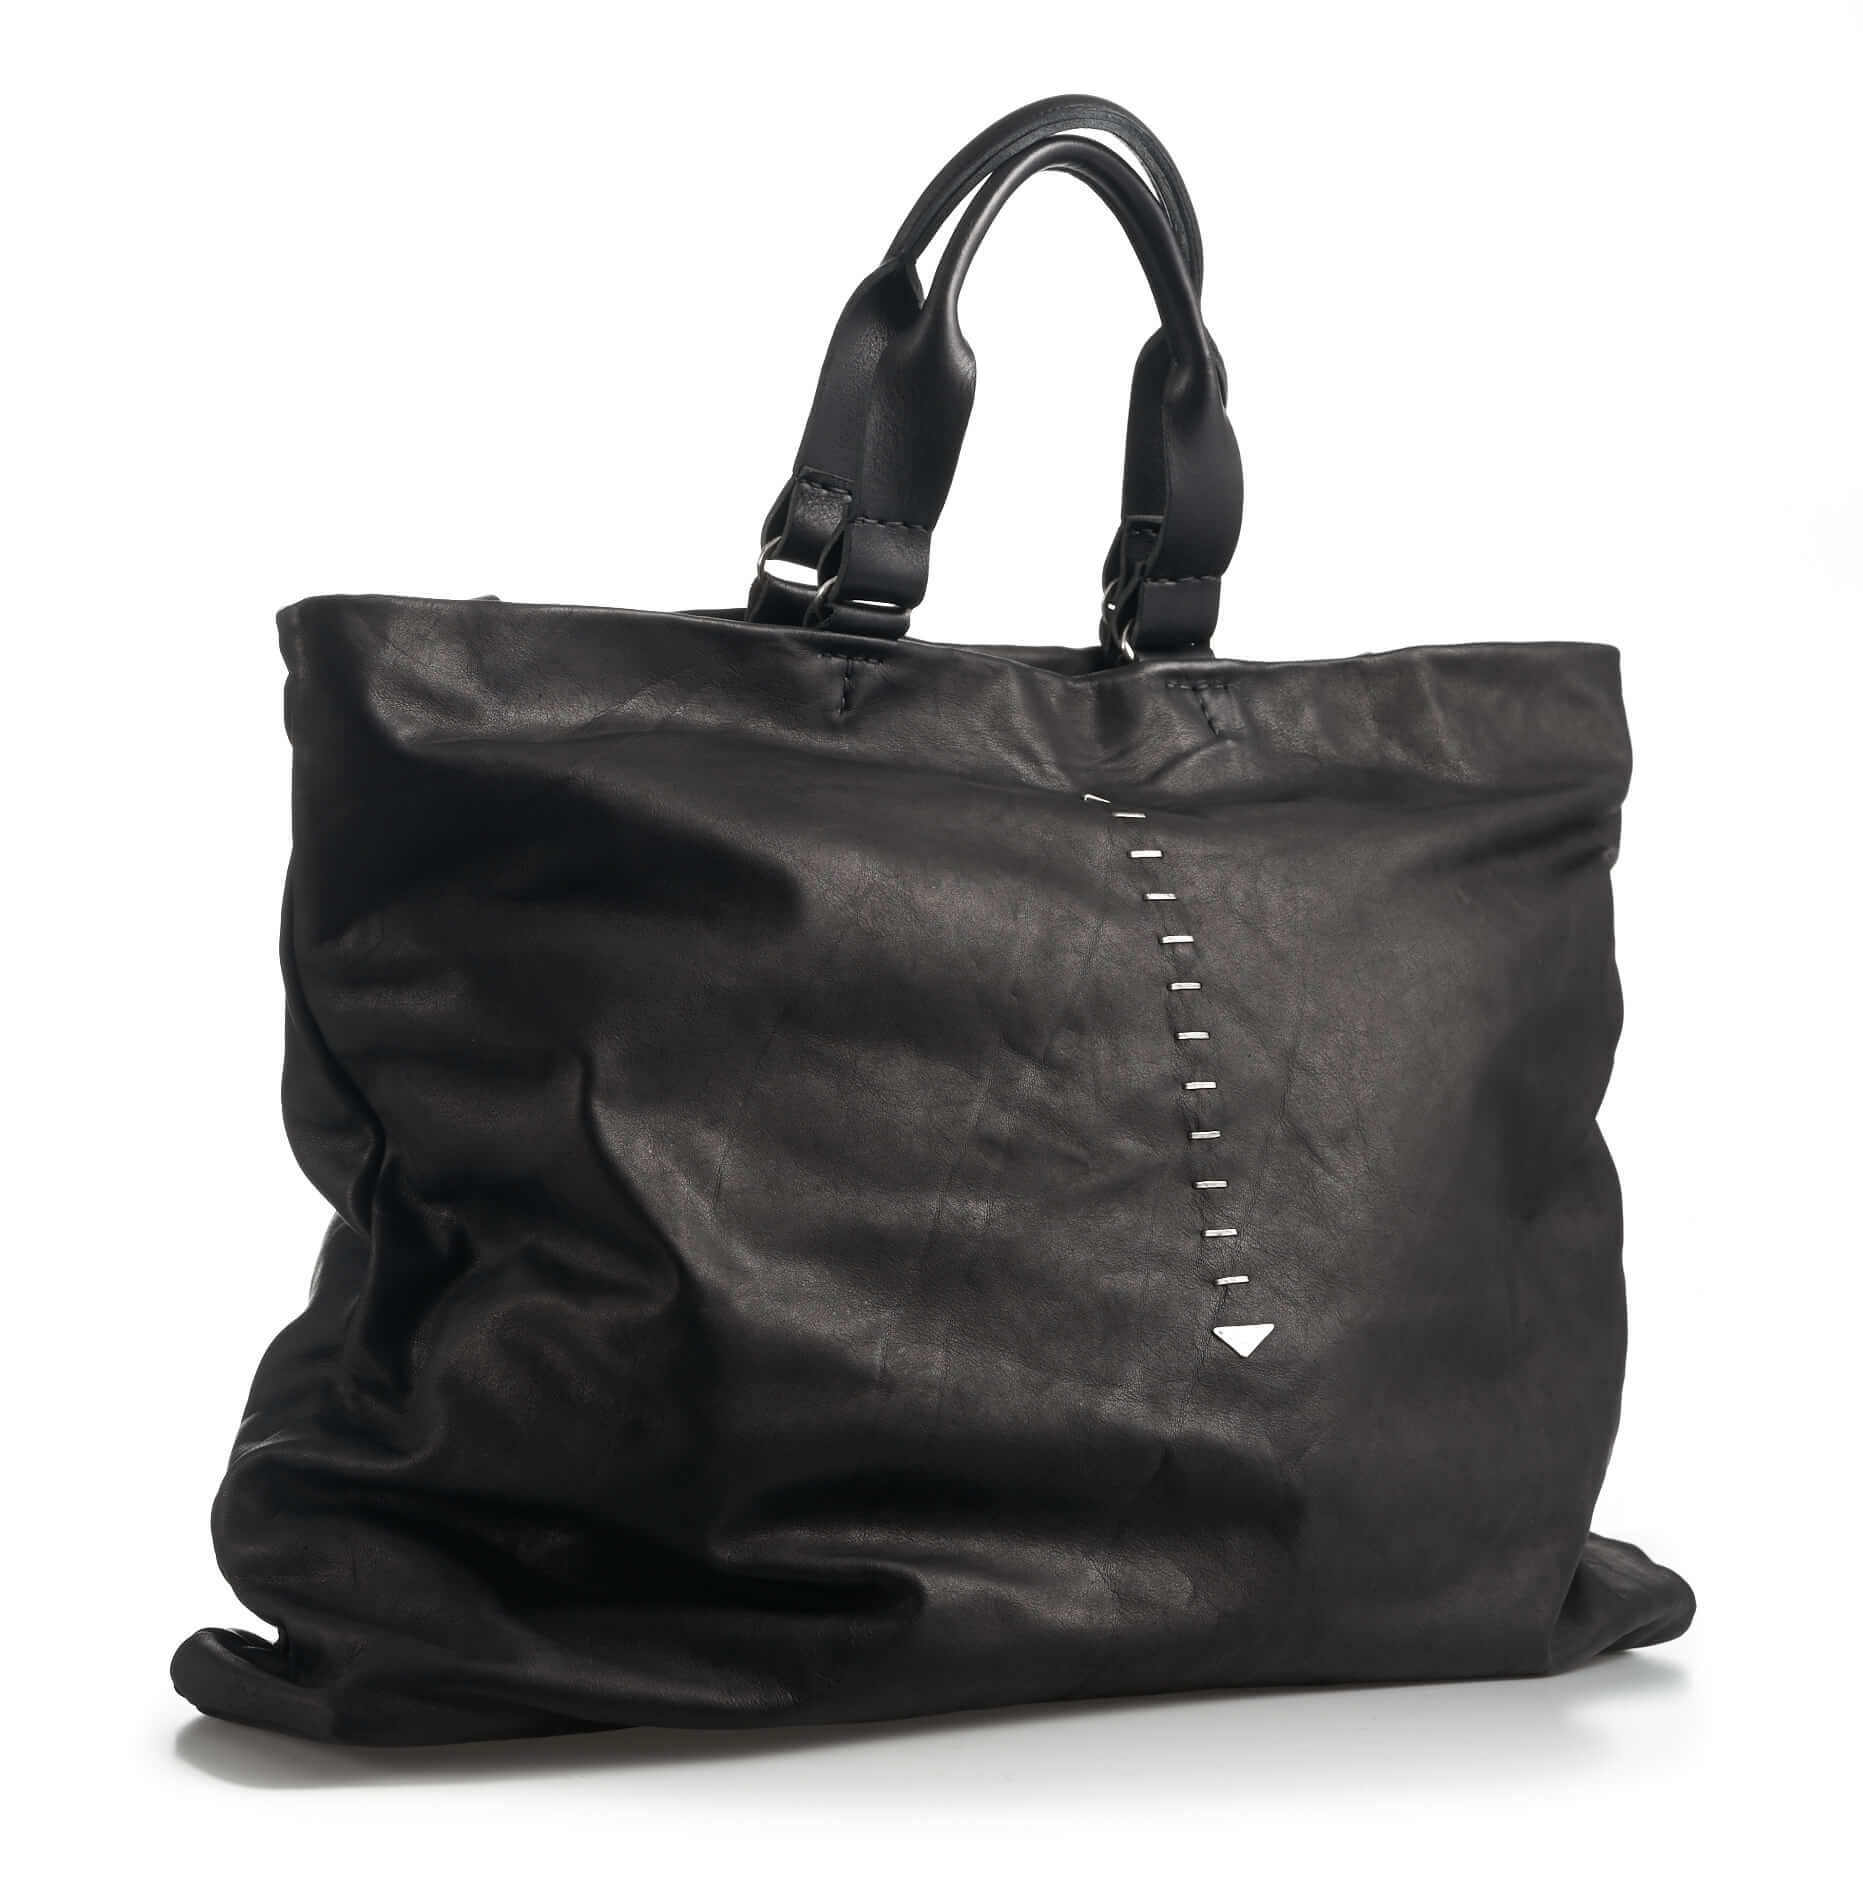 daniele basta leather and silver bags - kali foglie front